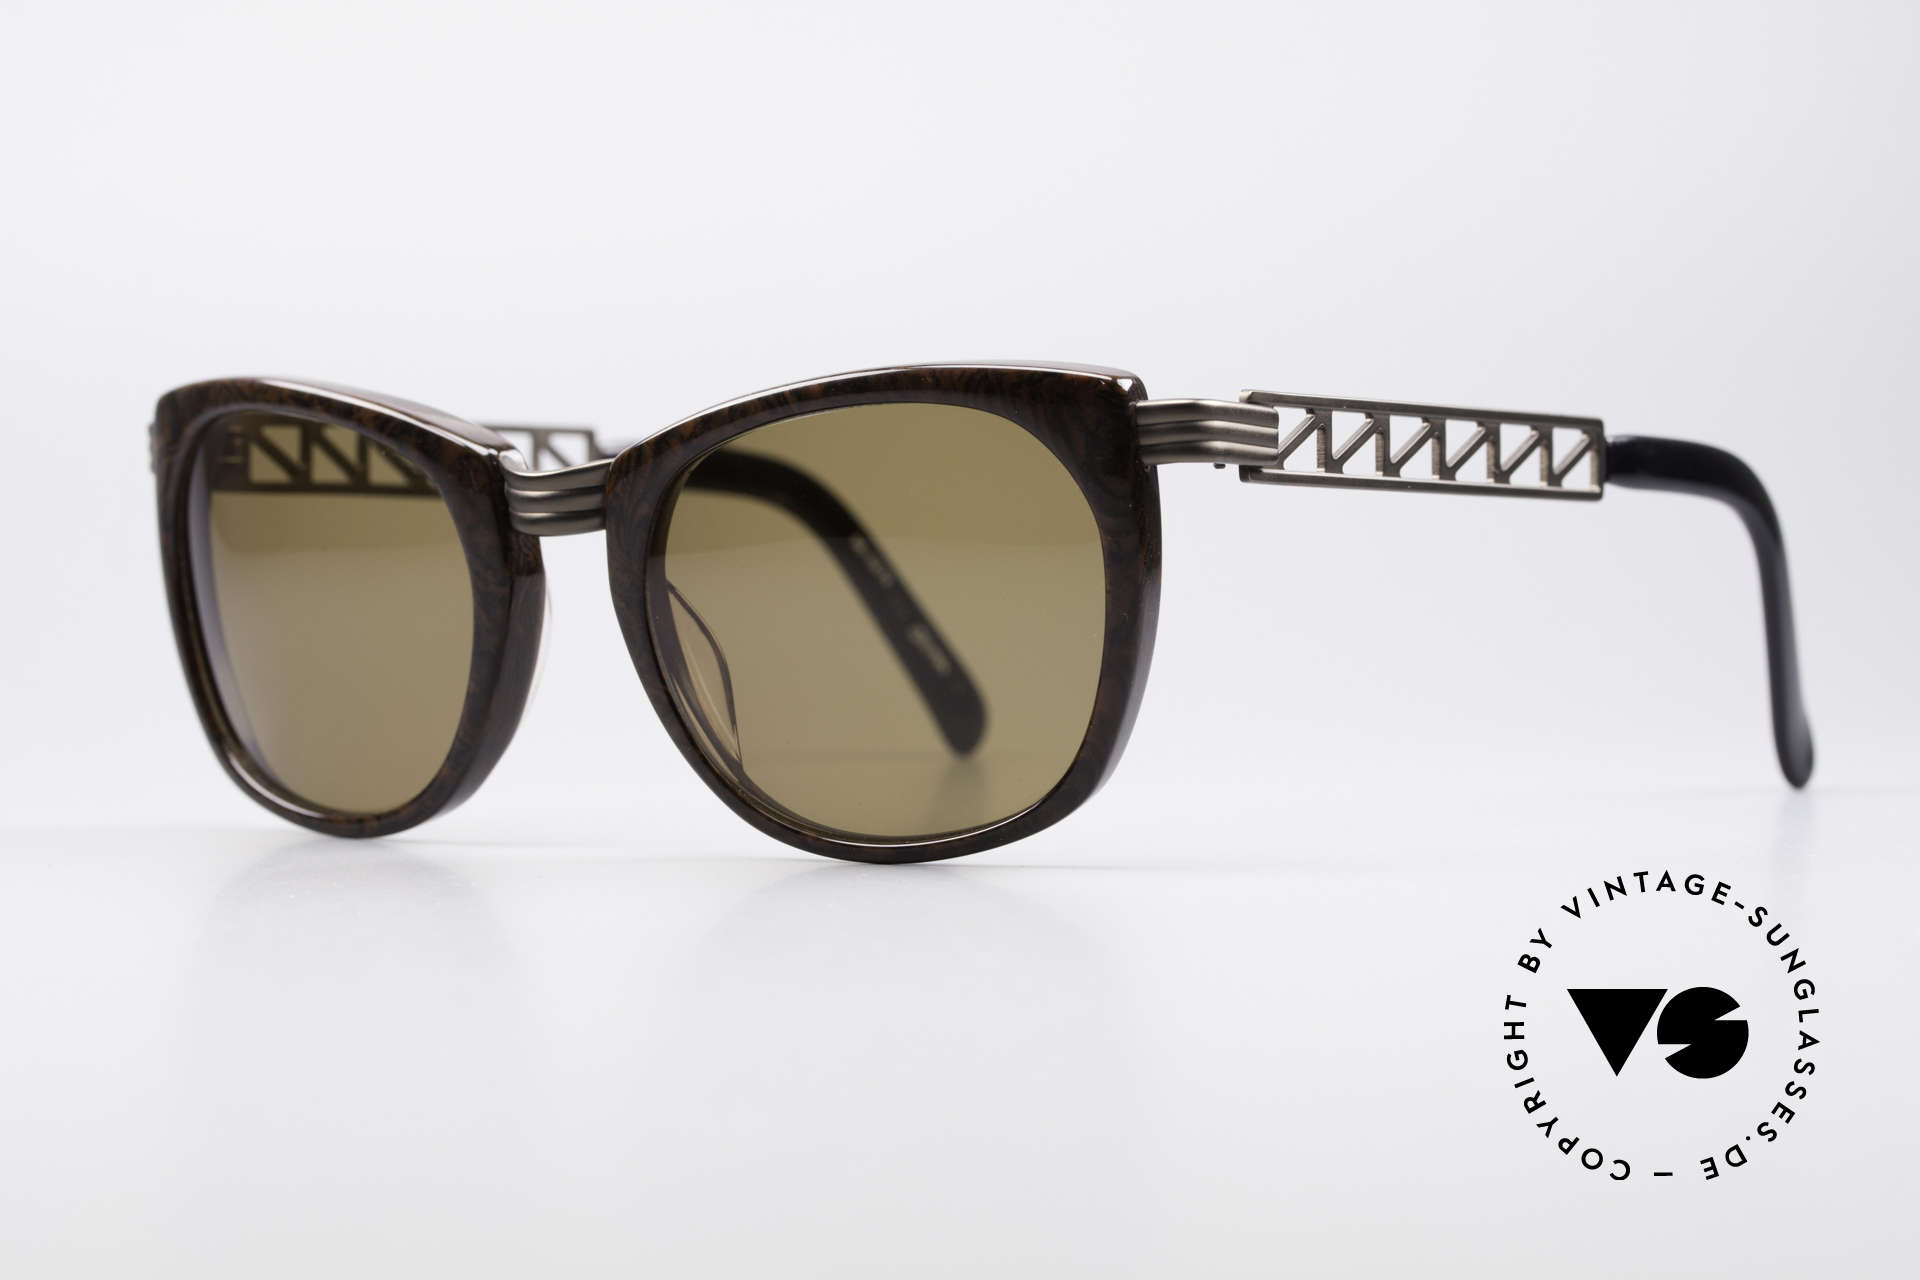 """Jean Paul Gaultier 56-0272 Steampunk JPG Sunglasses, """"root wood"""" frame with """"rusty brown"""" finish, Made for Men and Women"""